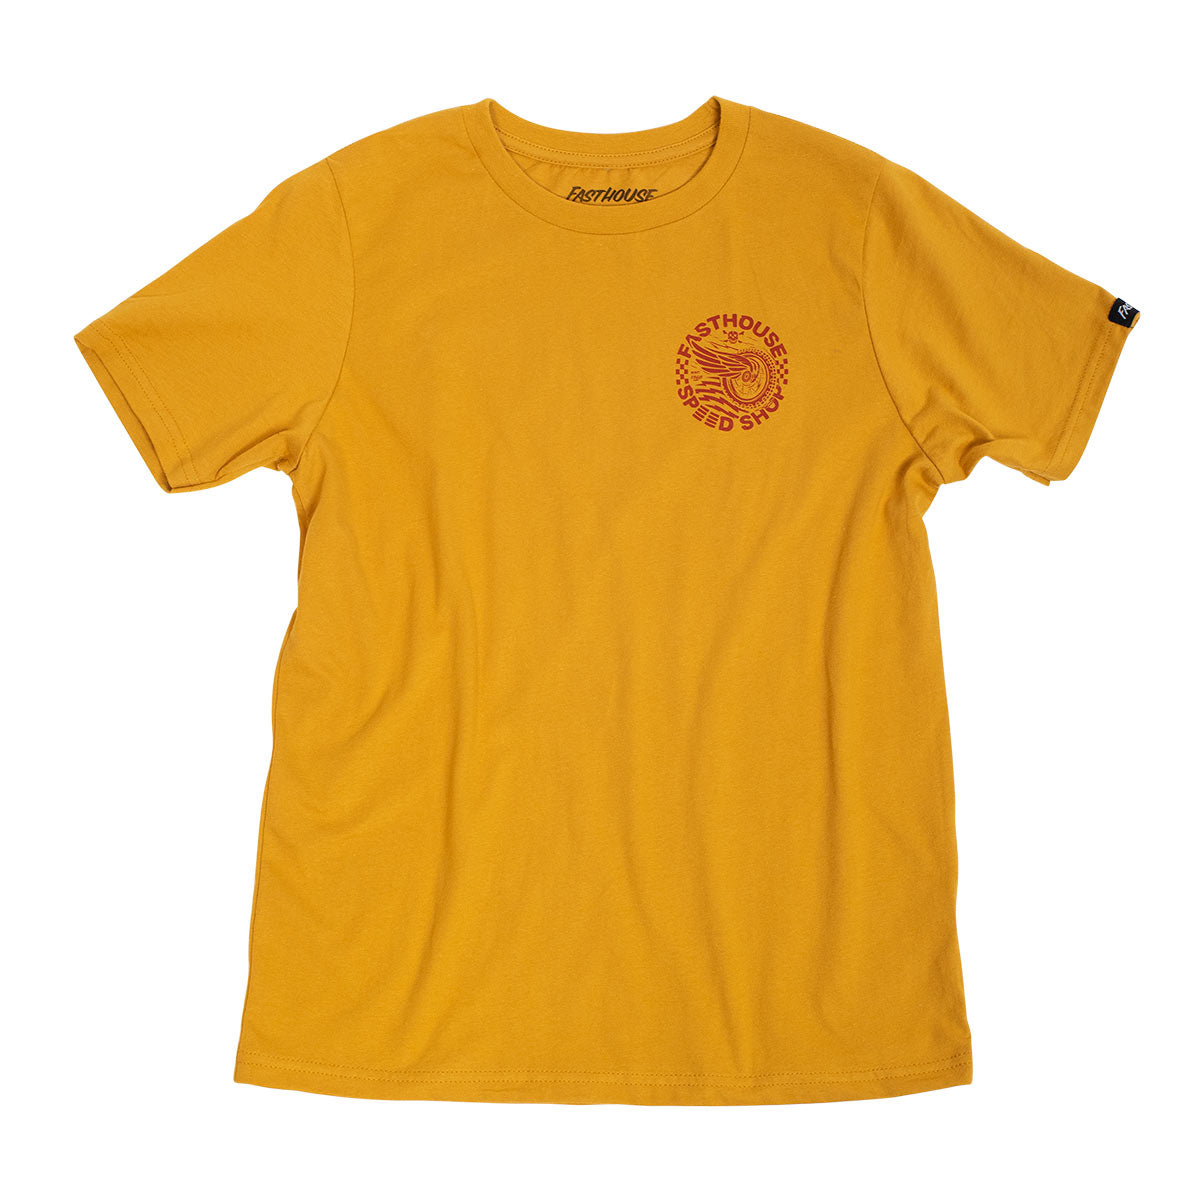 Seeker Youth Tee - Vintage Gold